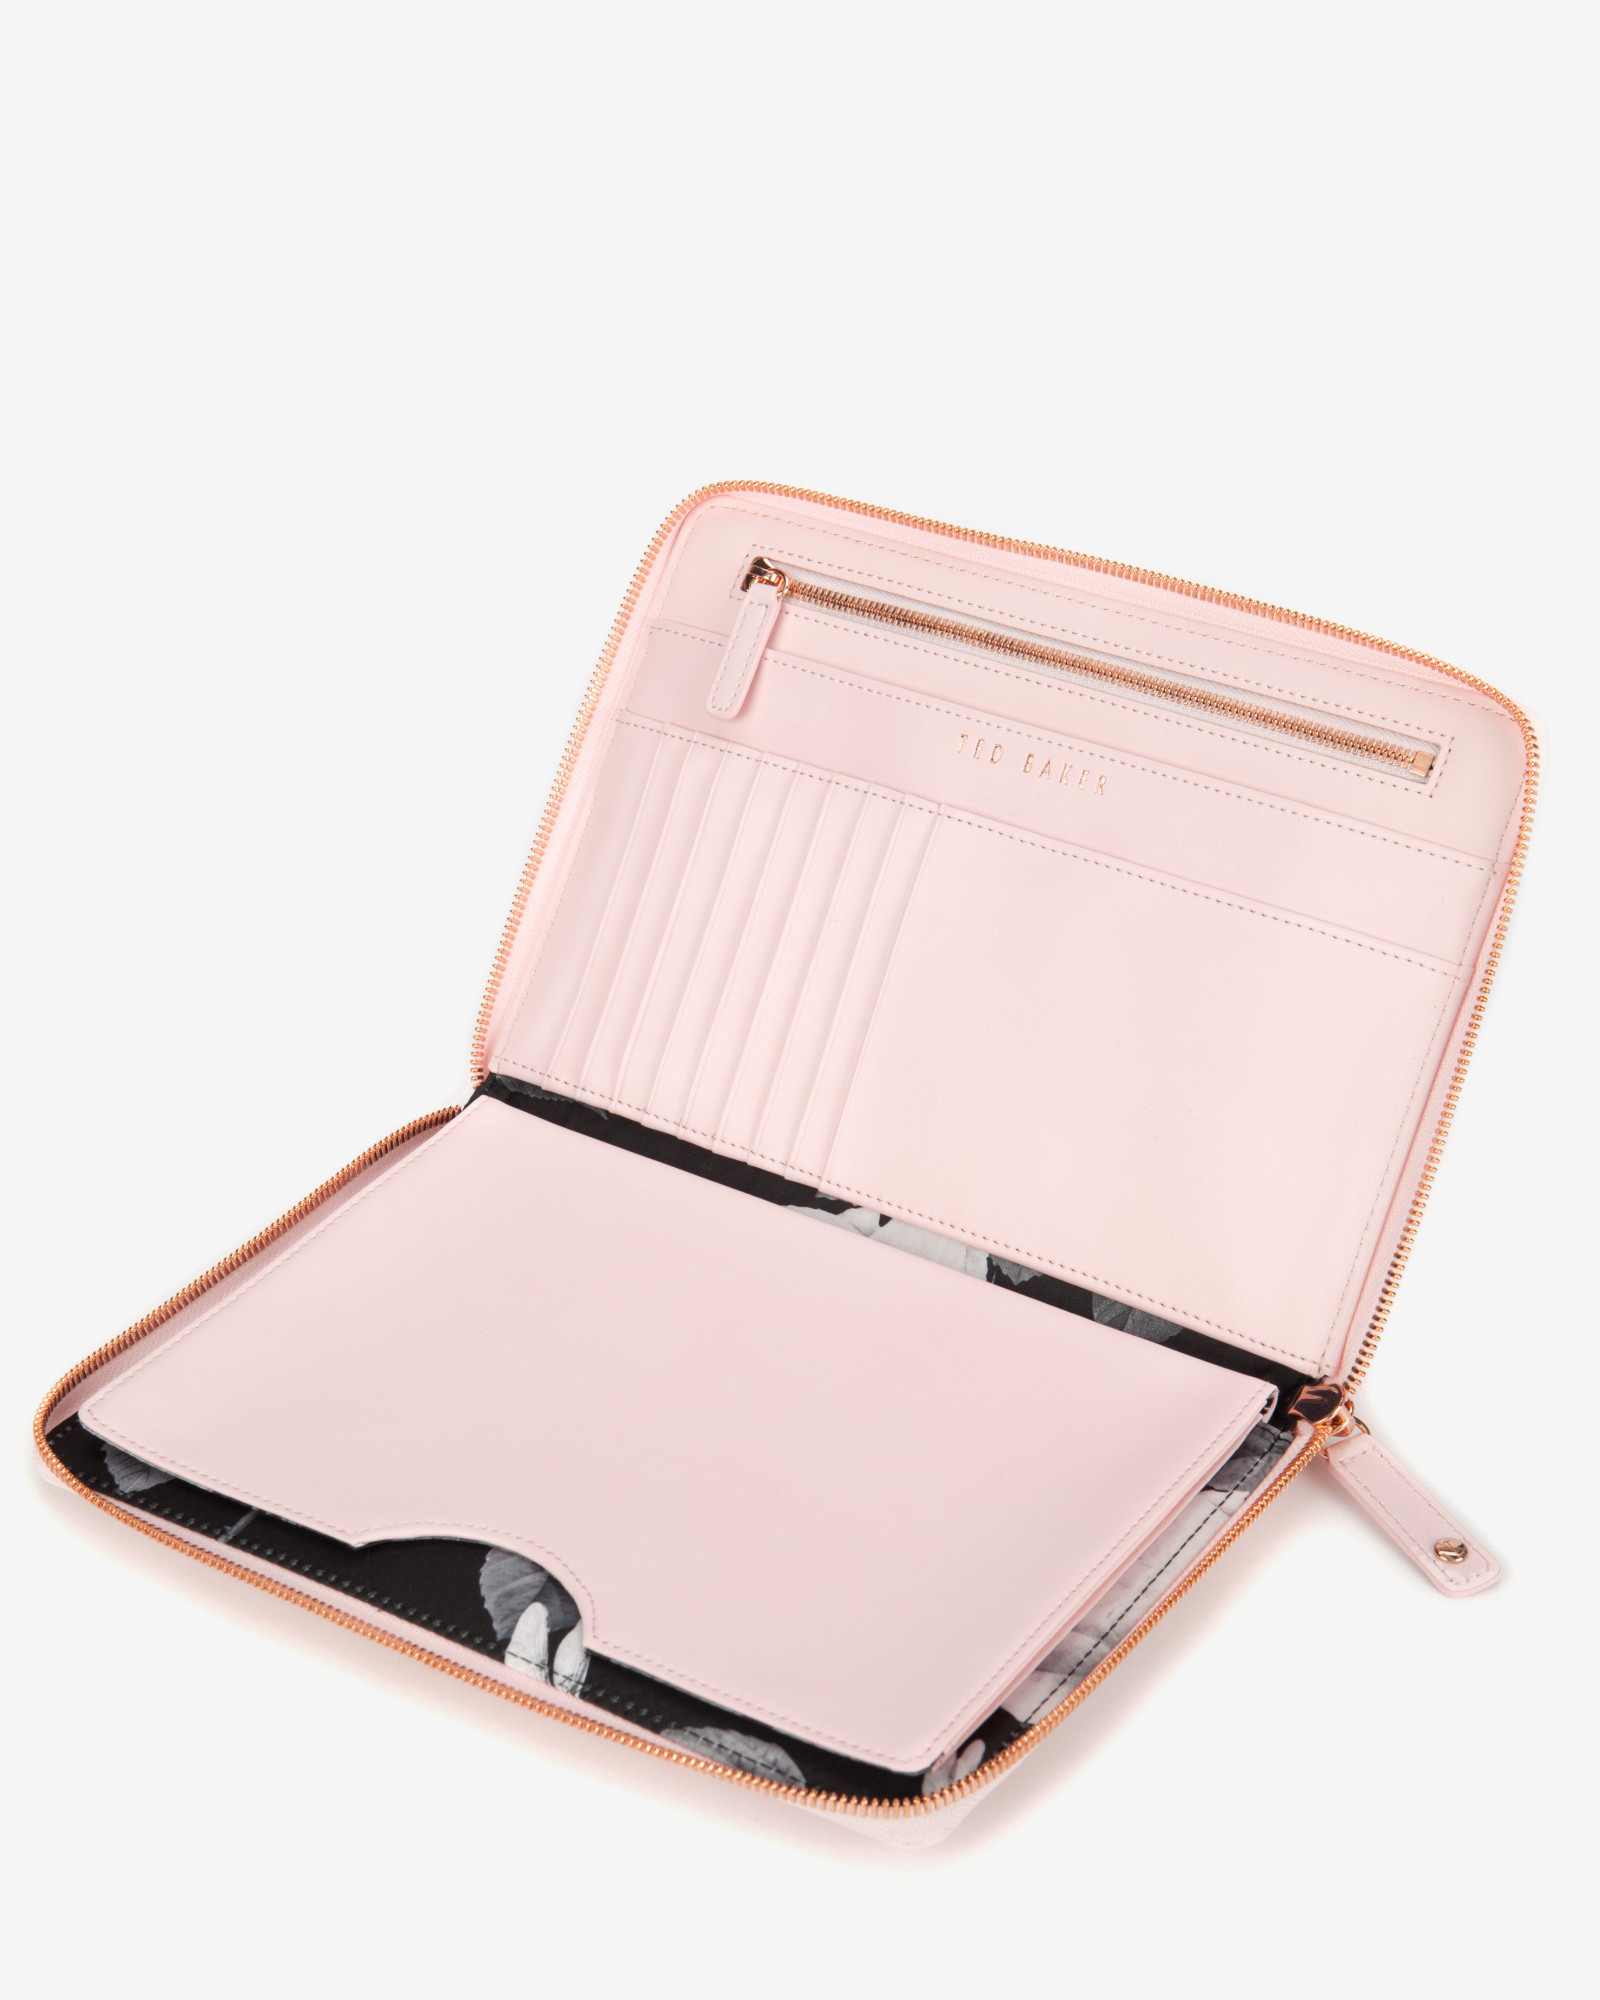 newest collection e36d4 9321b Ted Baker Pink Patent Mini Tablet Case